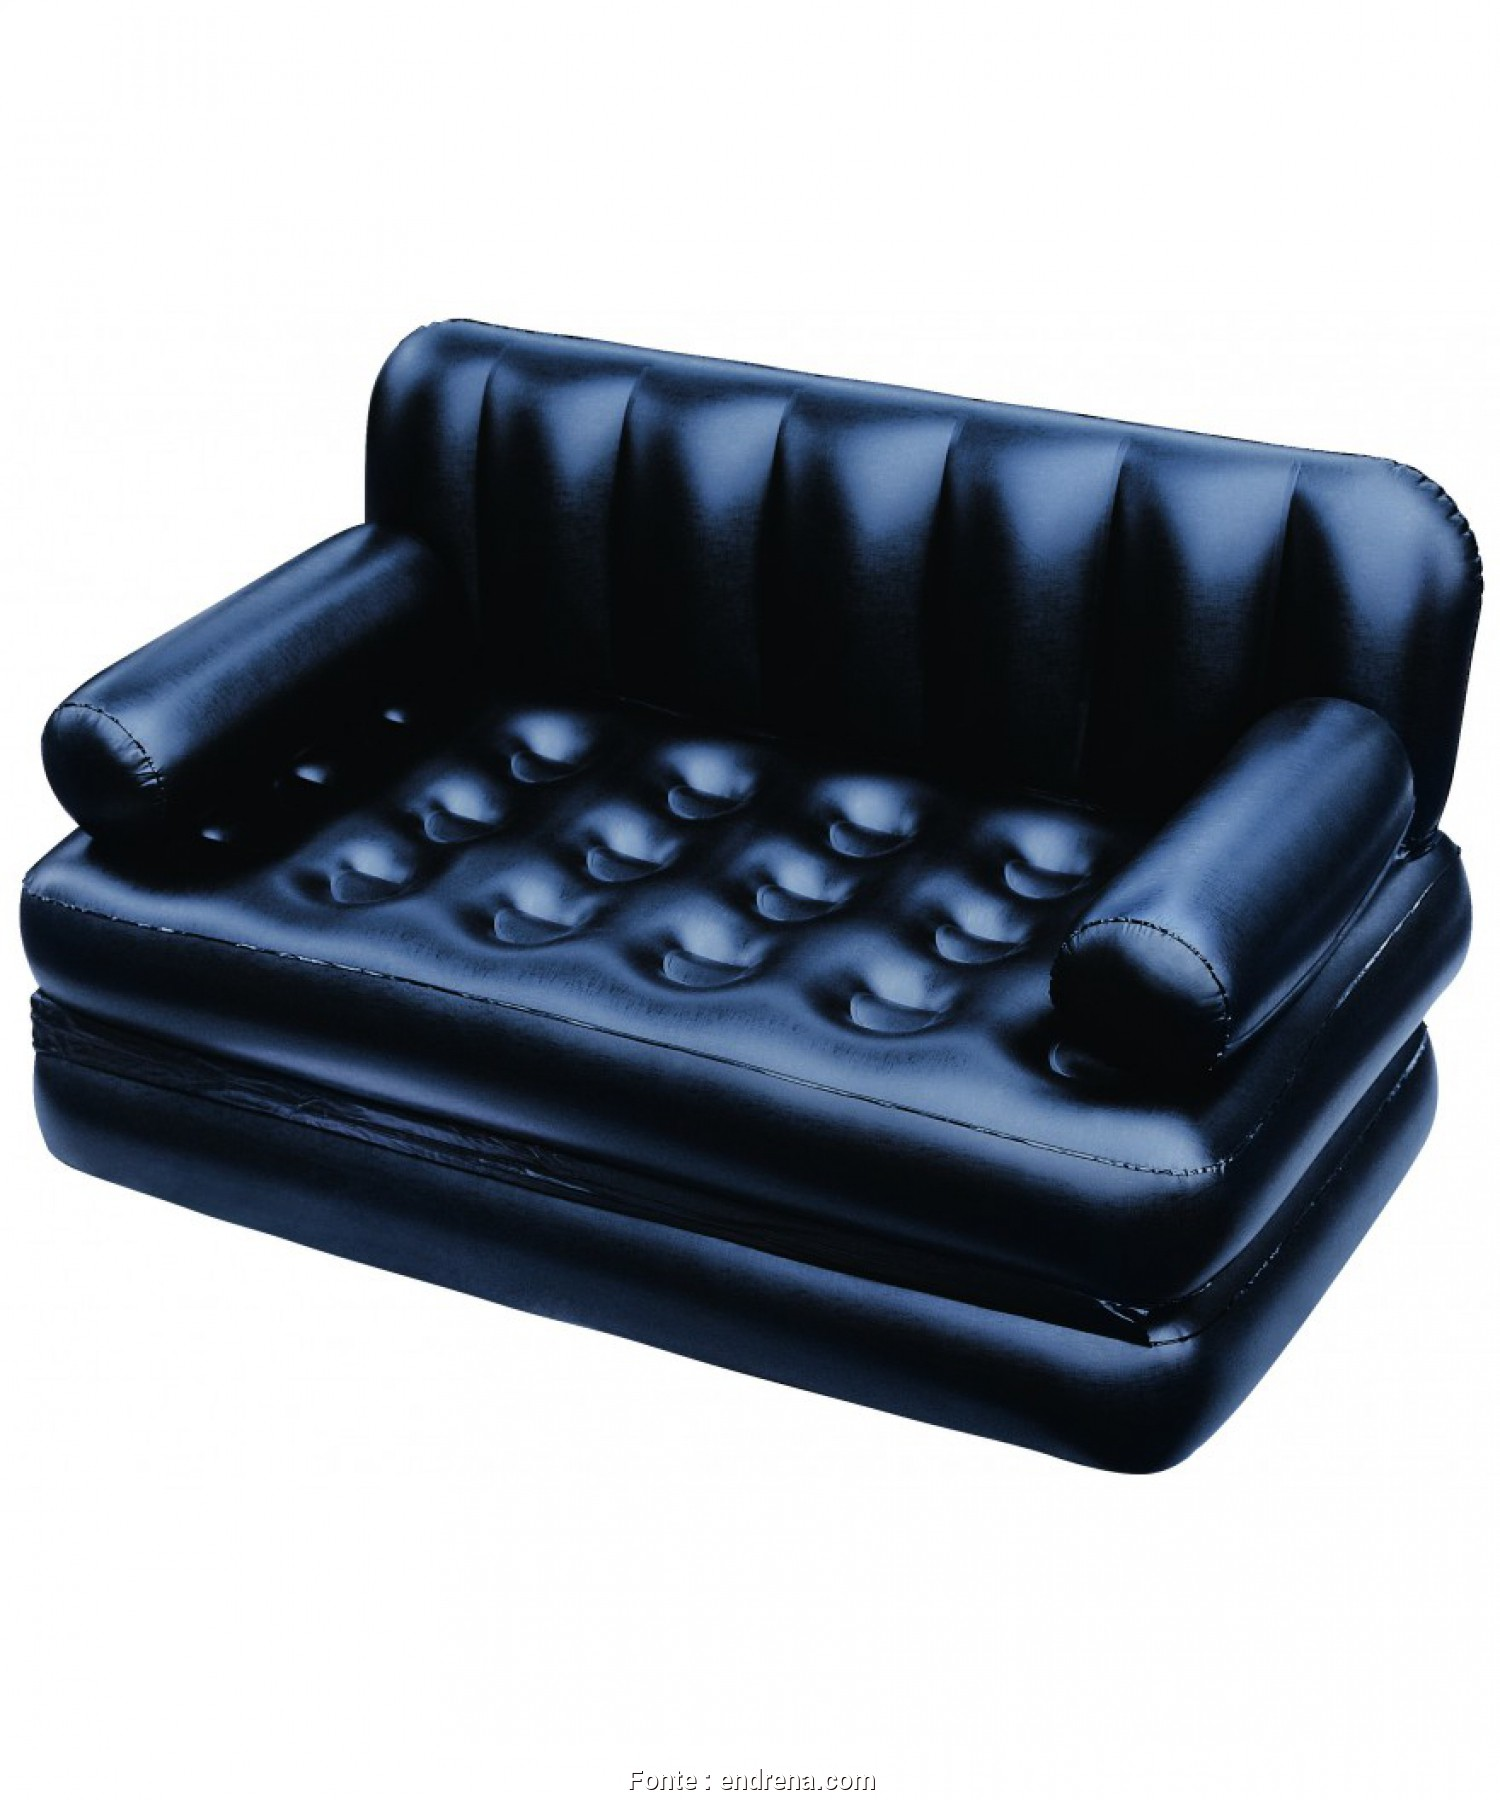 Bello 4 Divano Gonfiabile Sofa Bed